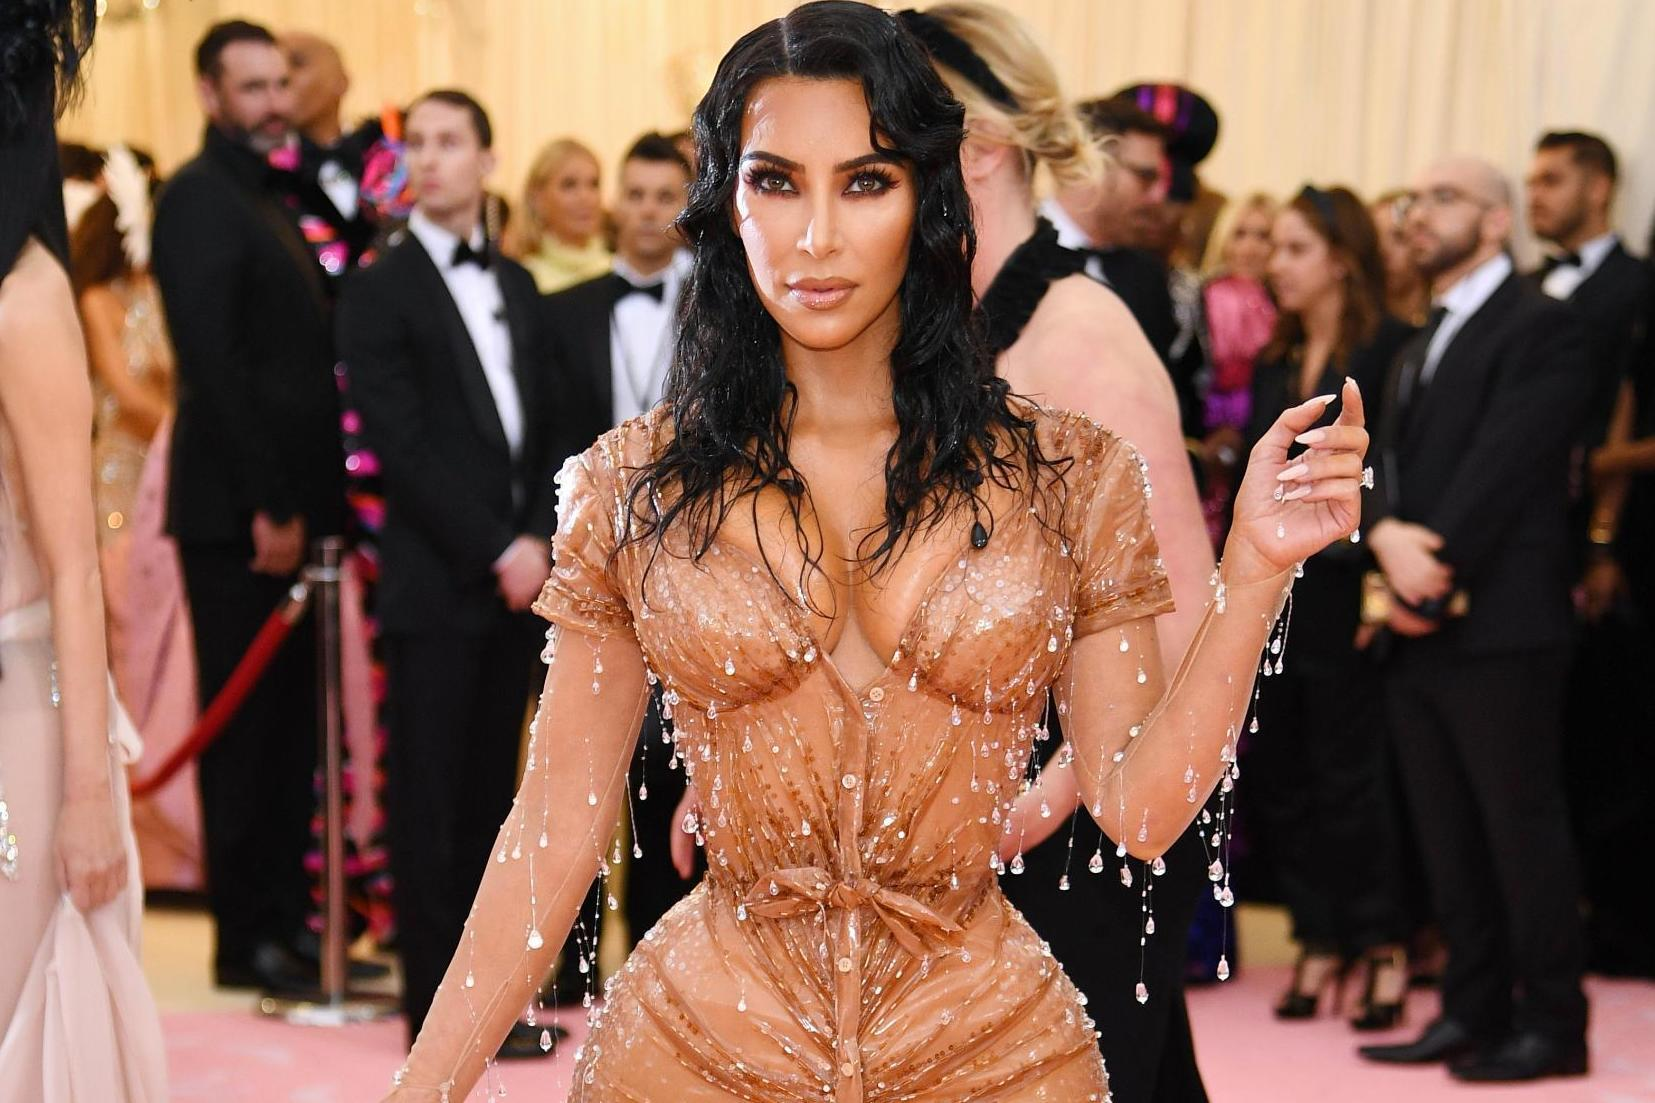 kim-kardashian-reveals-her-secret-for-flaunting-such-a-tiny-waist-at-the-met-gala-see-the-video